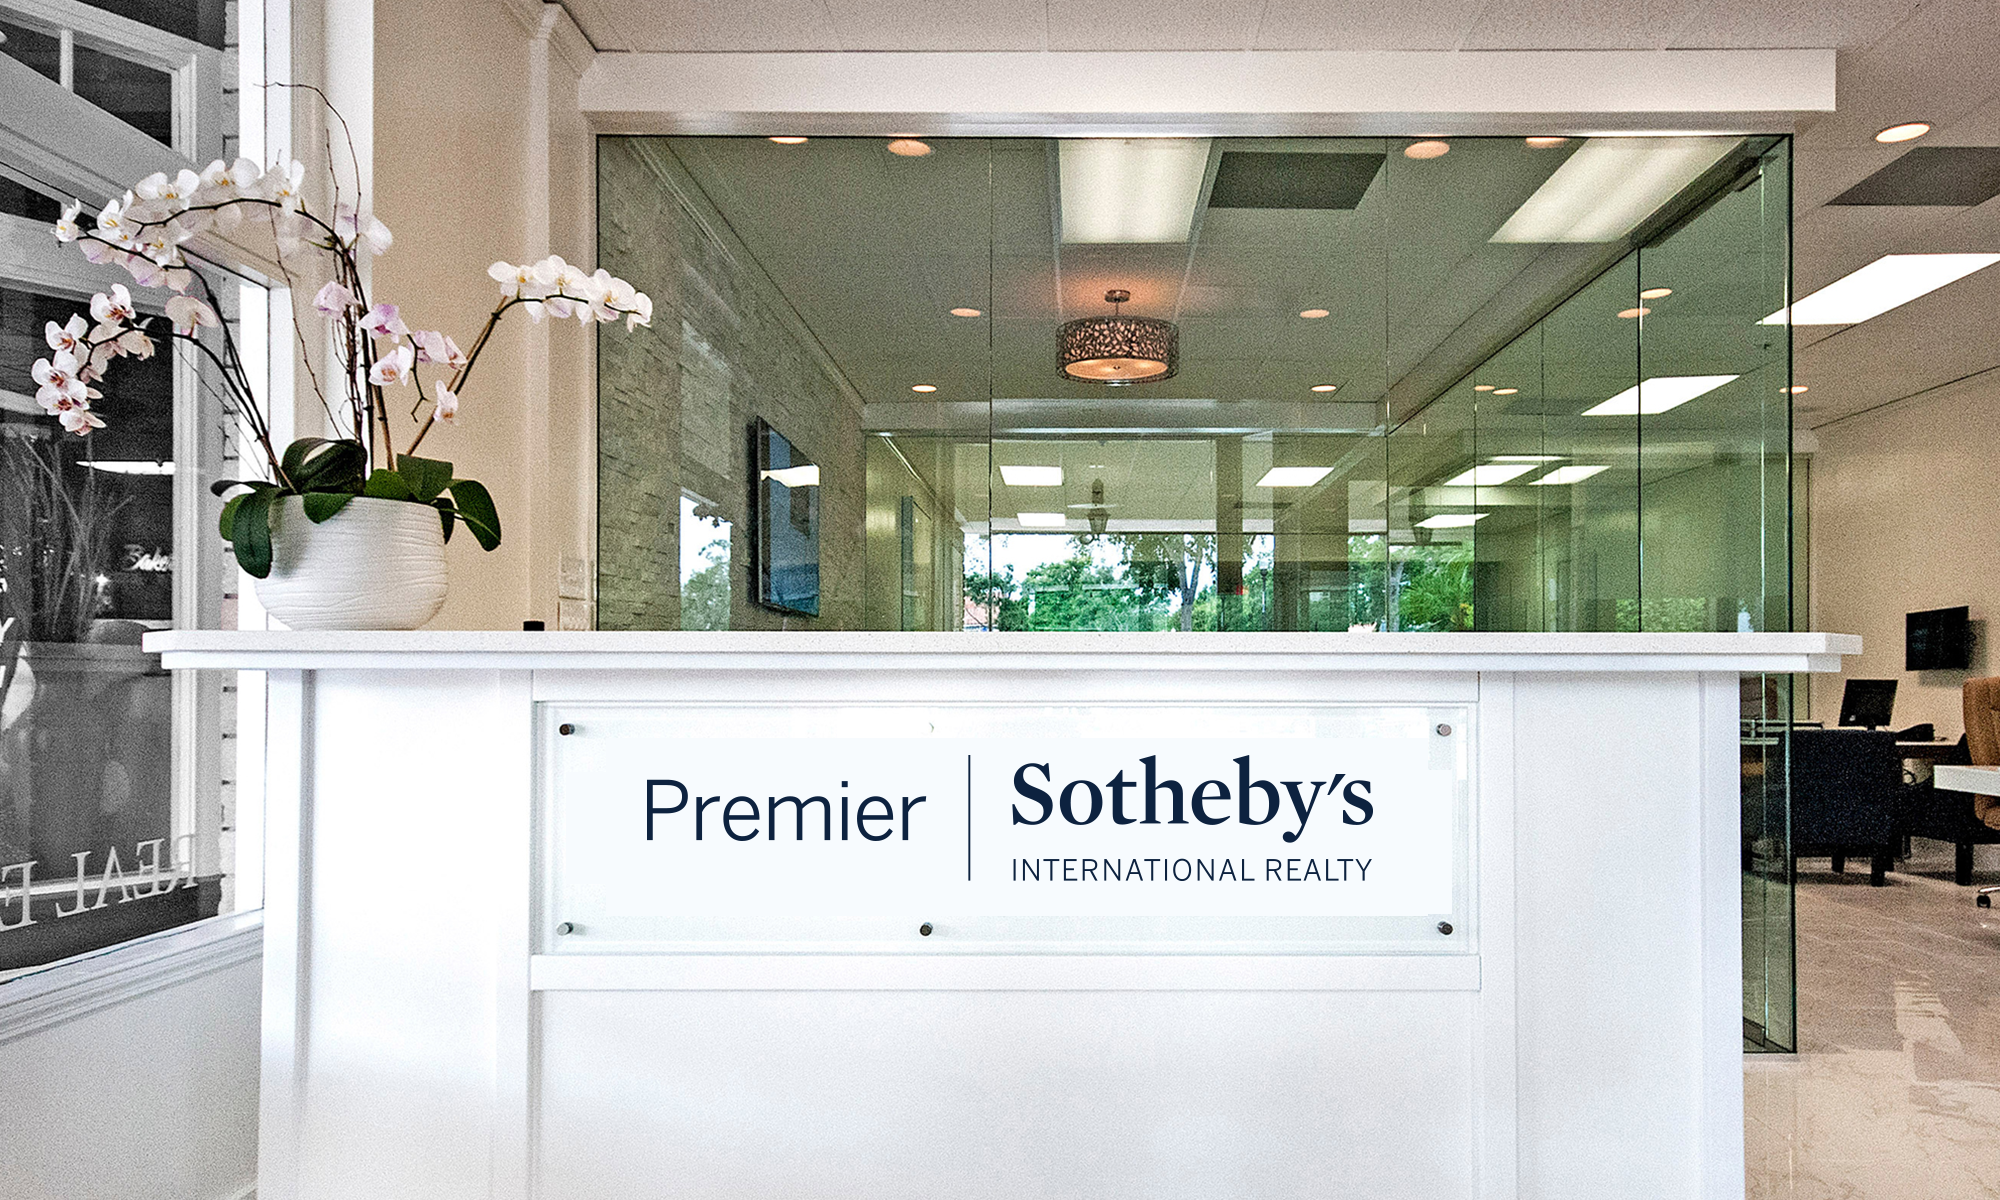 Premier Sotheby's International Realty Southwest Orlando